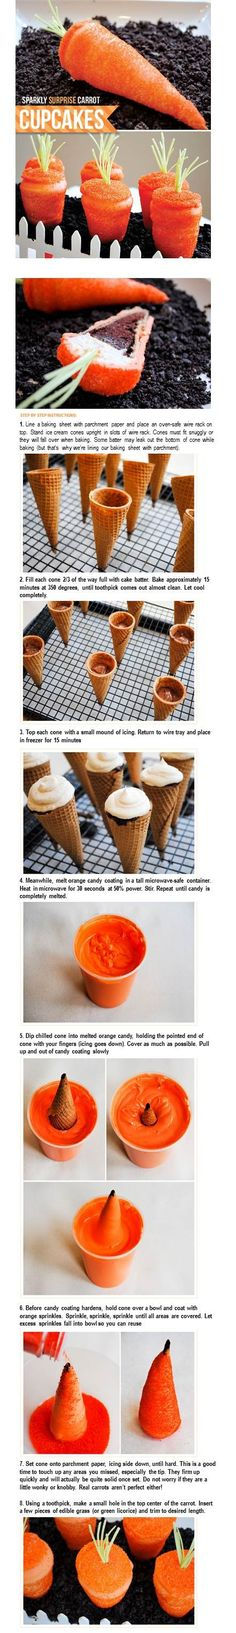 Carrot look cupcakes... saw these on Home and Family today..Joyzz.com...how fun are these :)